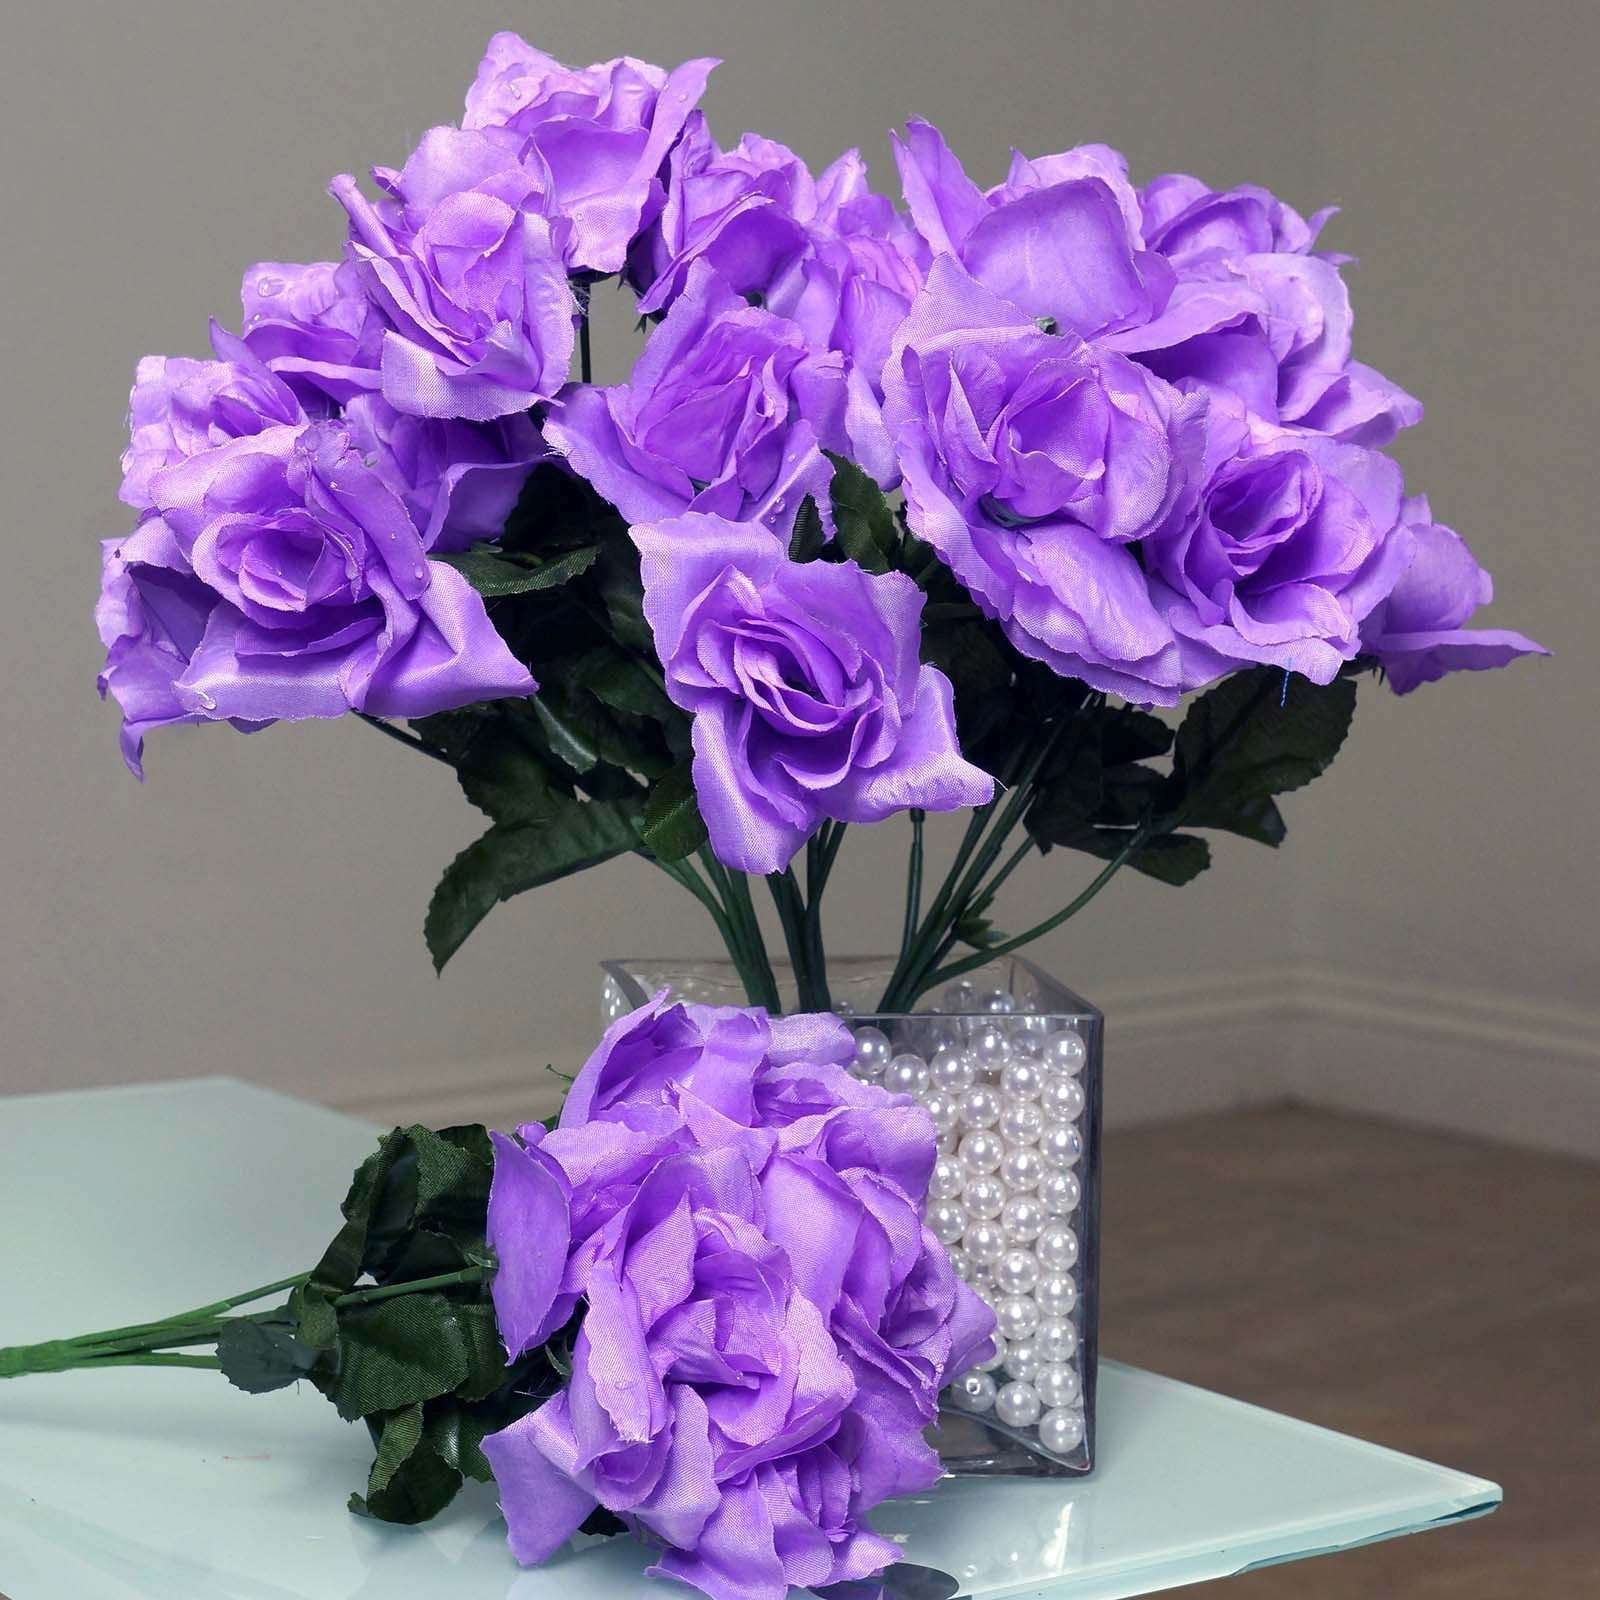 12 Bushes 84 Pcs Lavender Artificial Silk Rose Flowers With Green